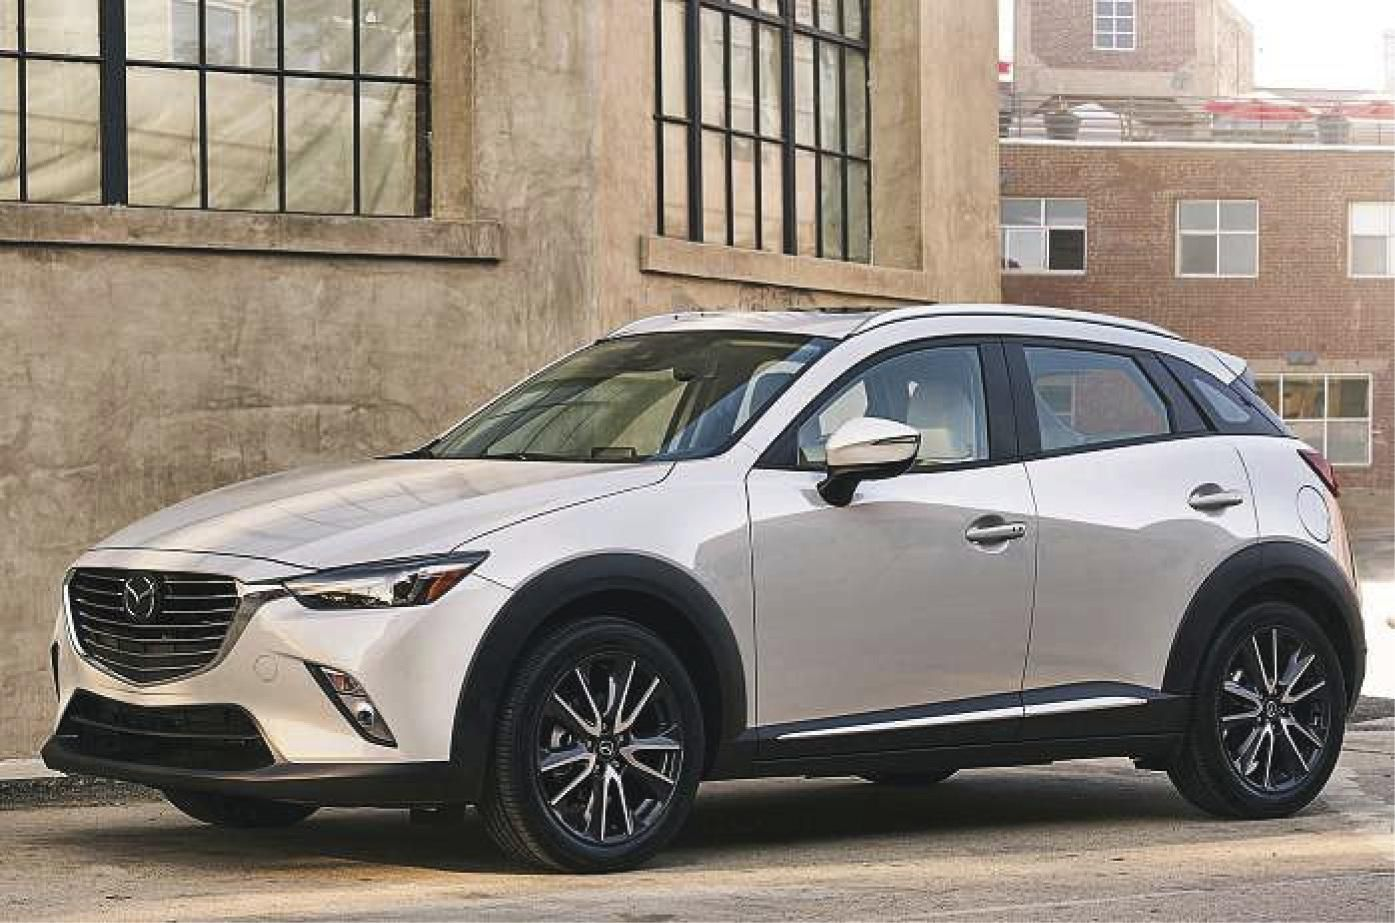 Mazda Cx 3 Small Crossover Gets Interior Engine Upgrades For 2019 Subcompact Mazda New Cars